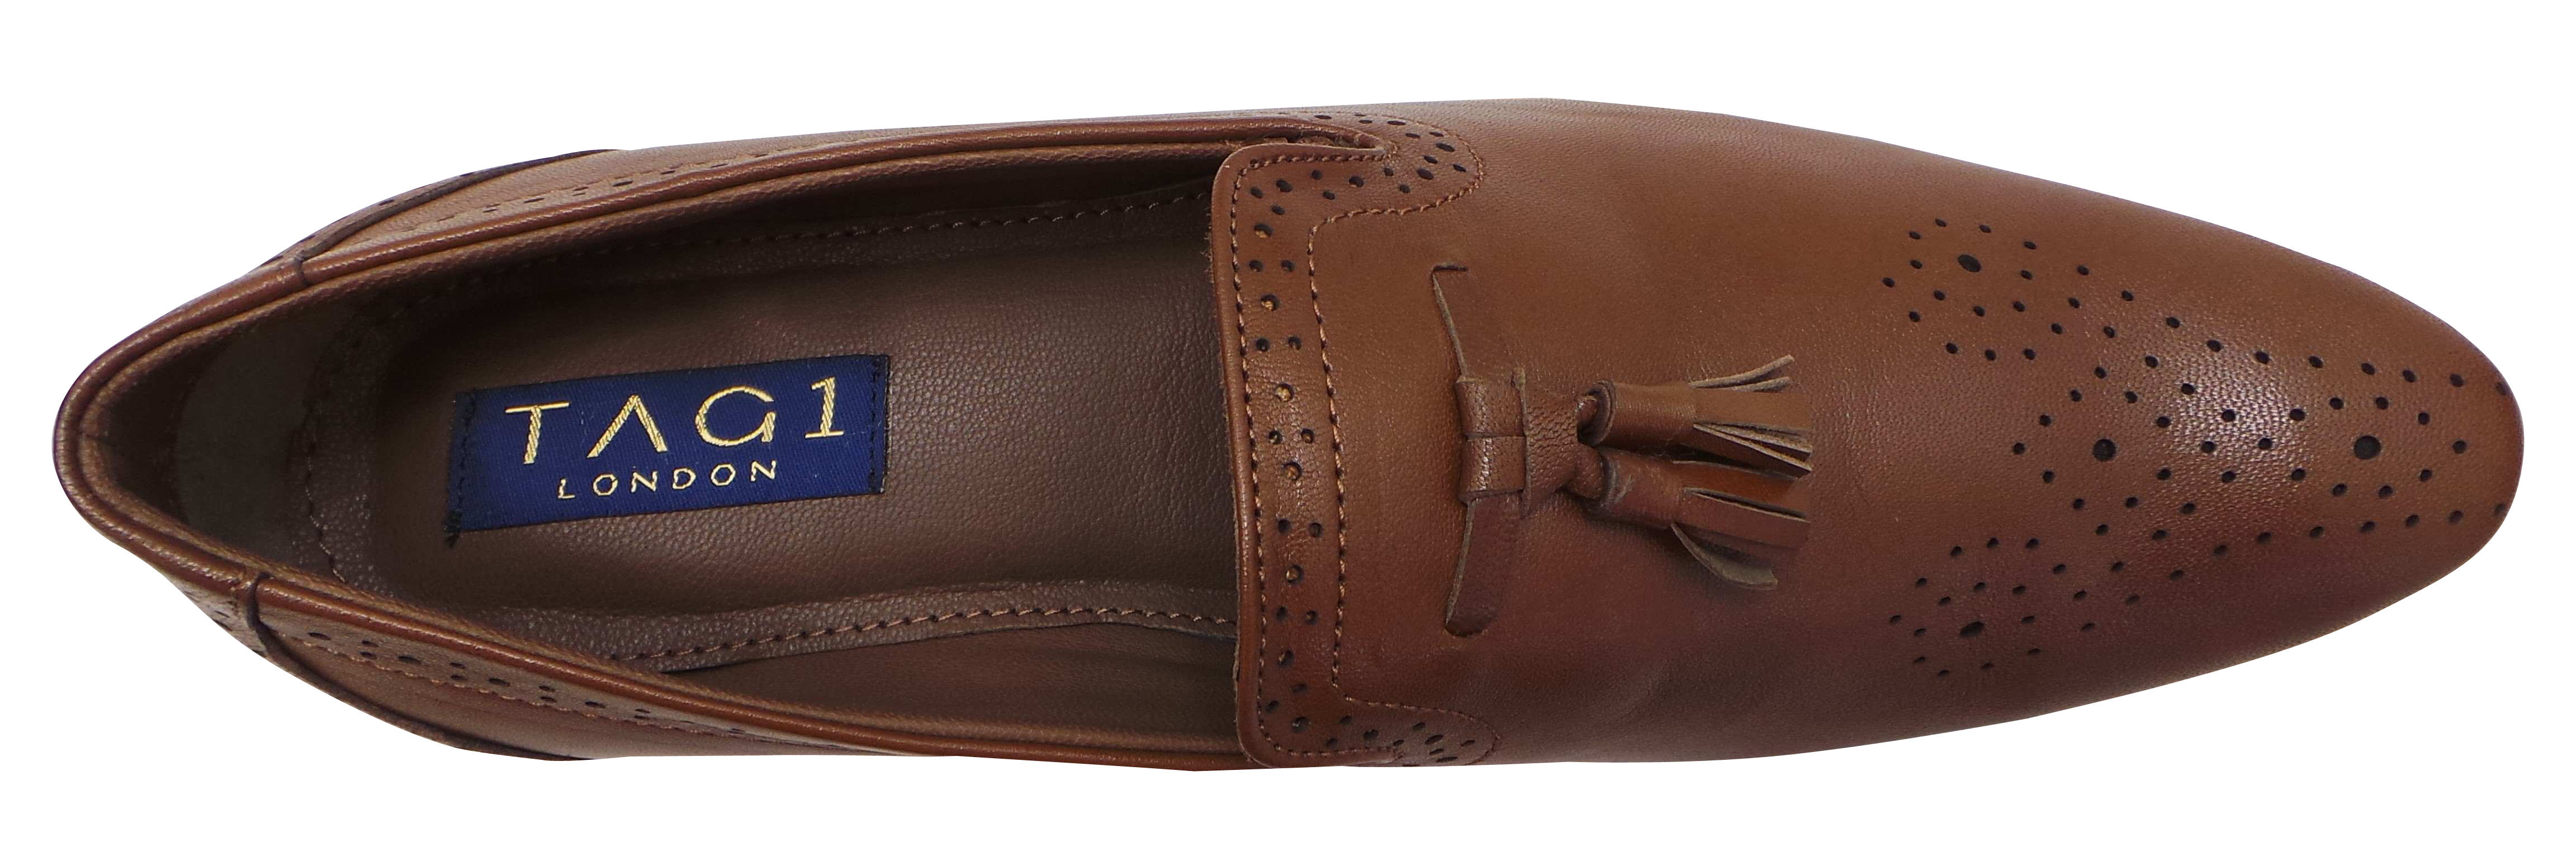 Made of genuine leather with a padded insole and flexible man-made sole for all-day comfort. Imported. Women's 1/2 whole and half sizes; 10, 11 whole sizes; M, W widths/5(59).